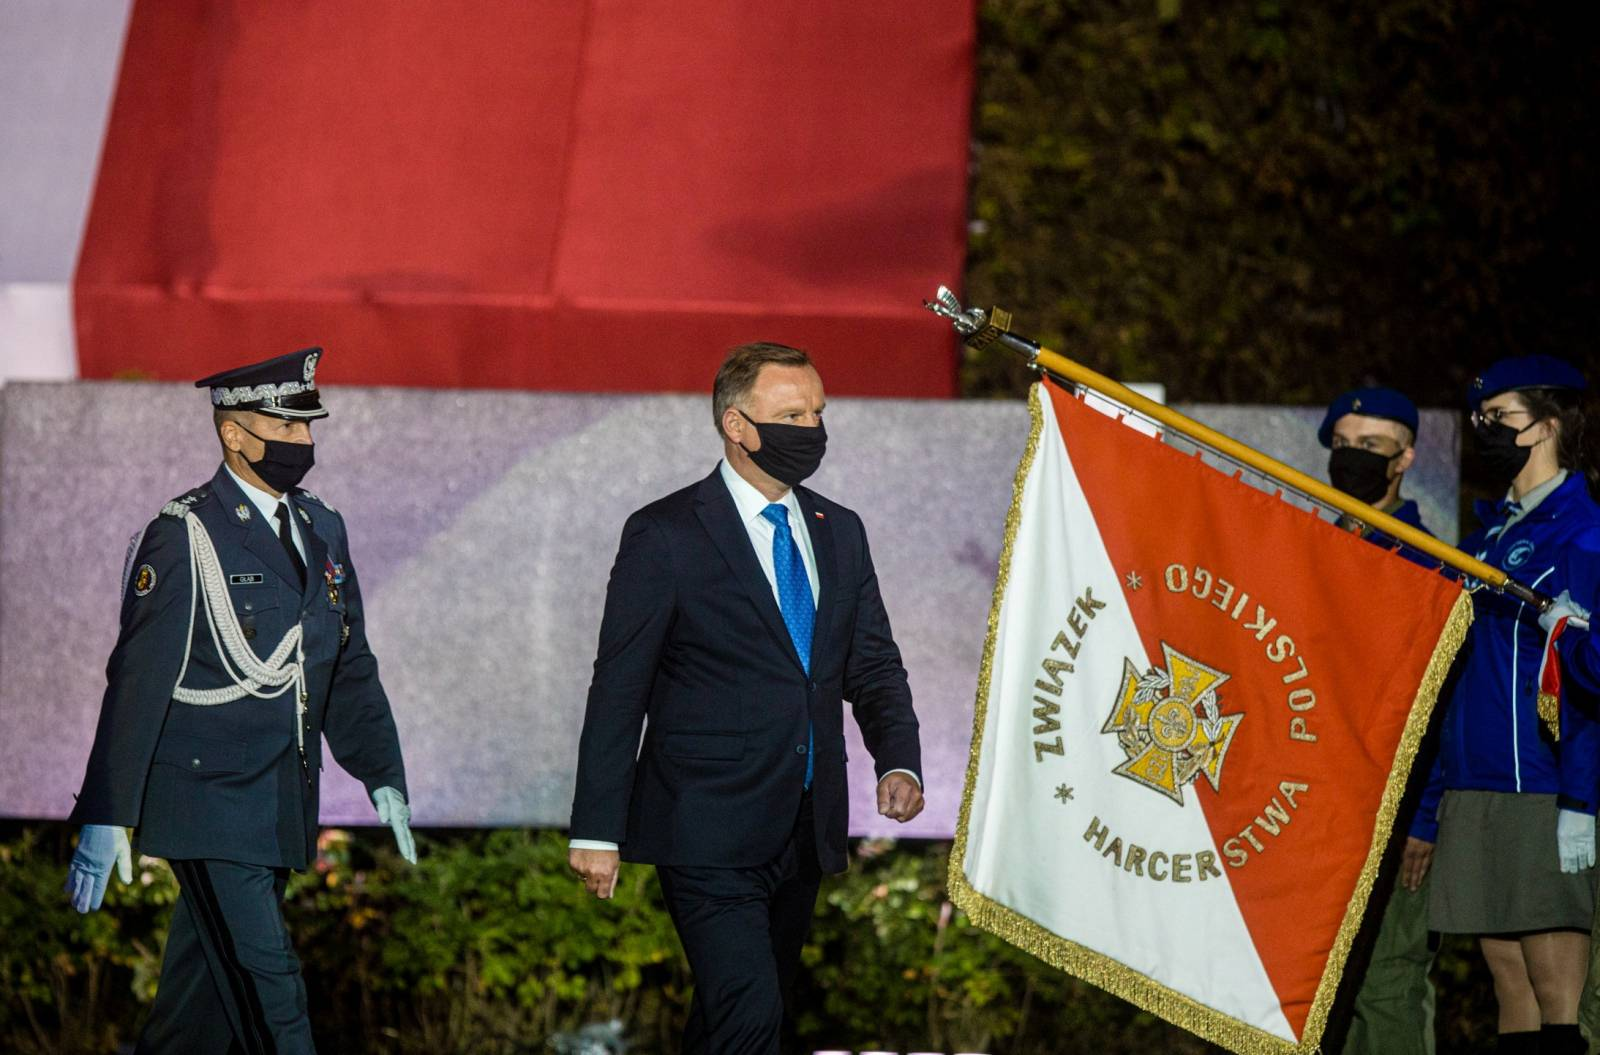 Polish President Duda takes part in a ceremony to mark the anniversary of the outbreak of World War Two in Gdansk